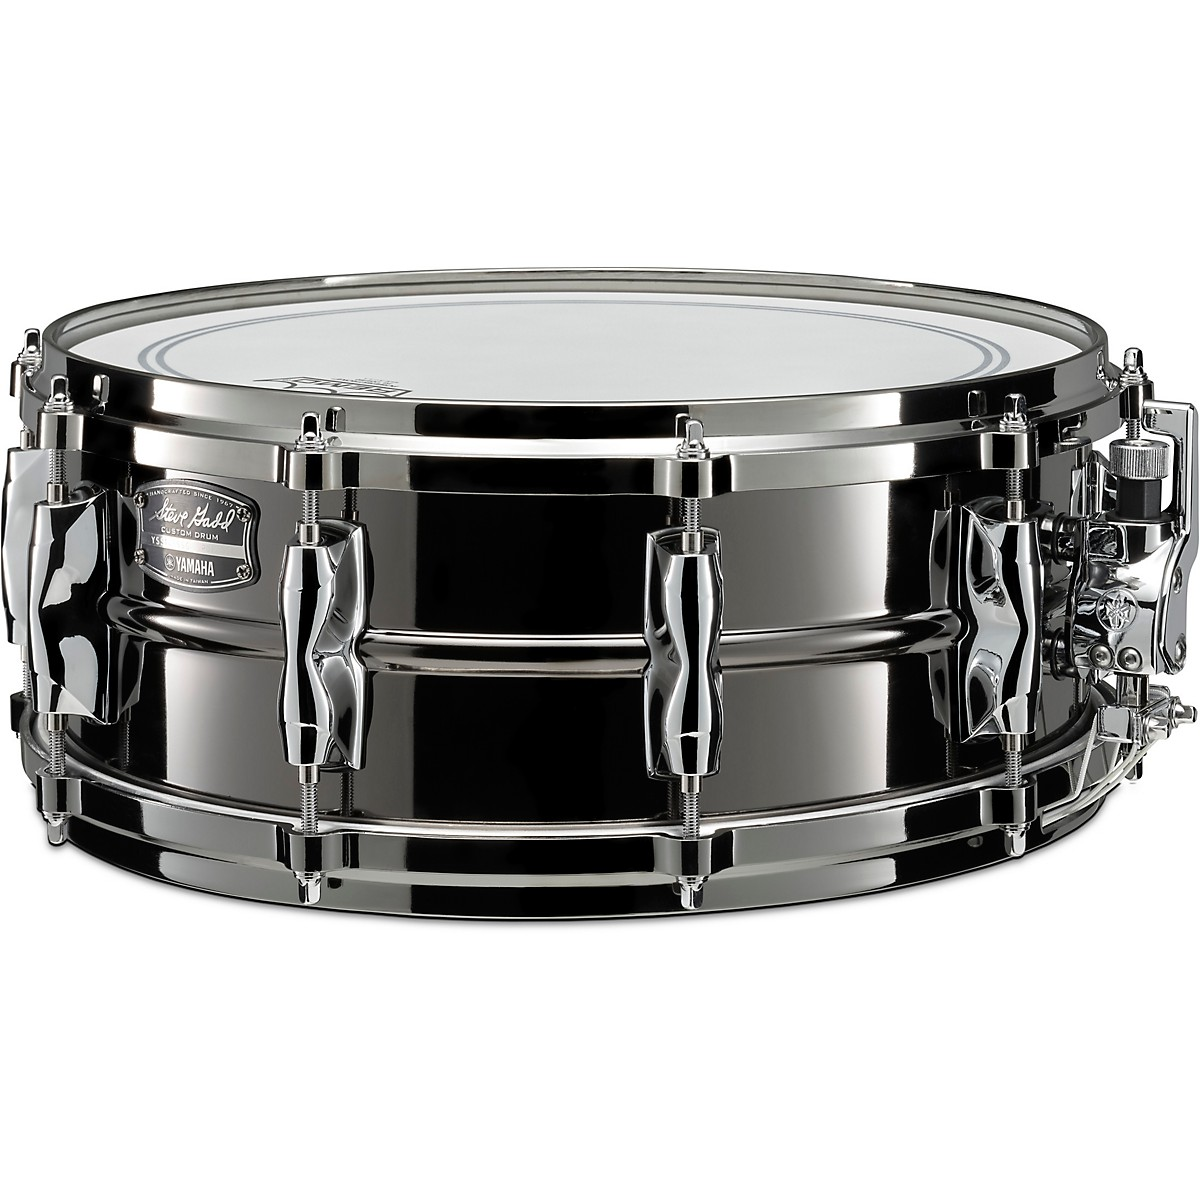 Yamaha Steve Gadd Limited Edition Steel Snare Drum